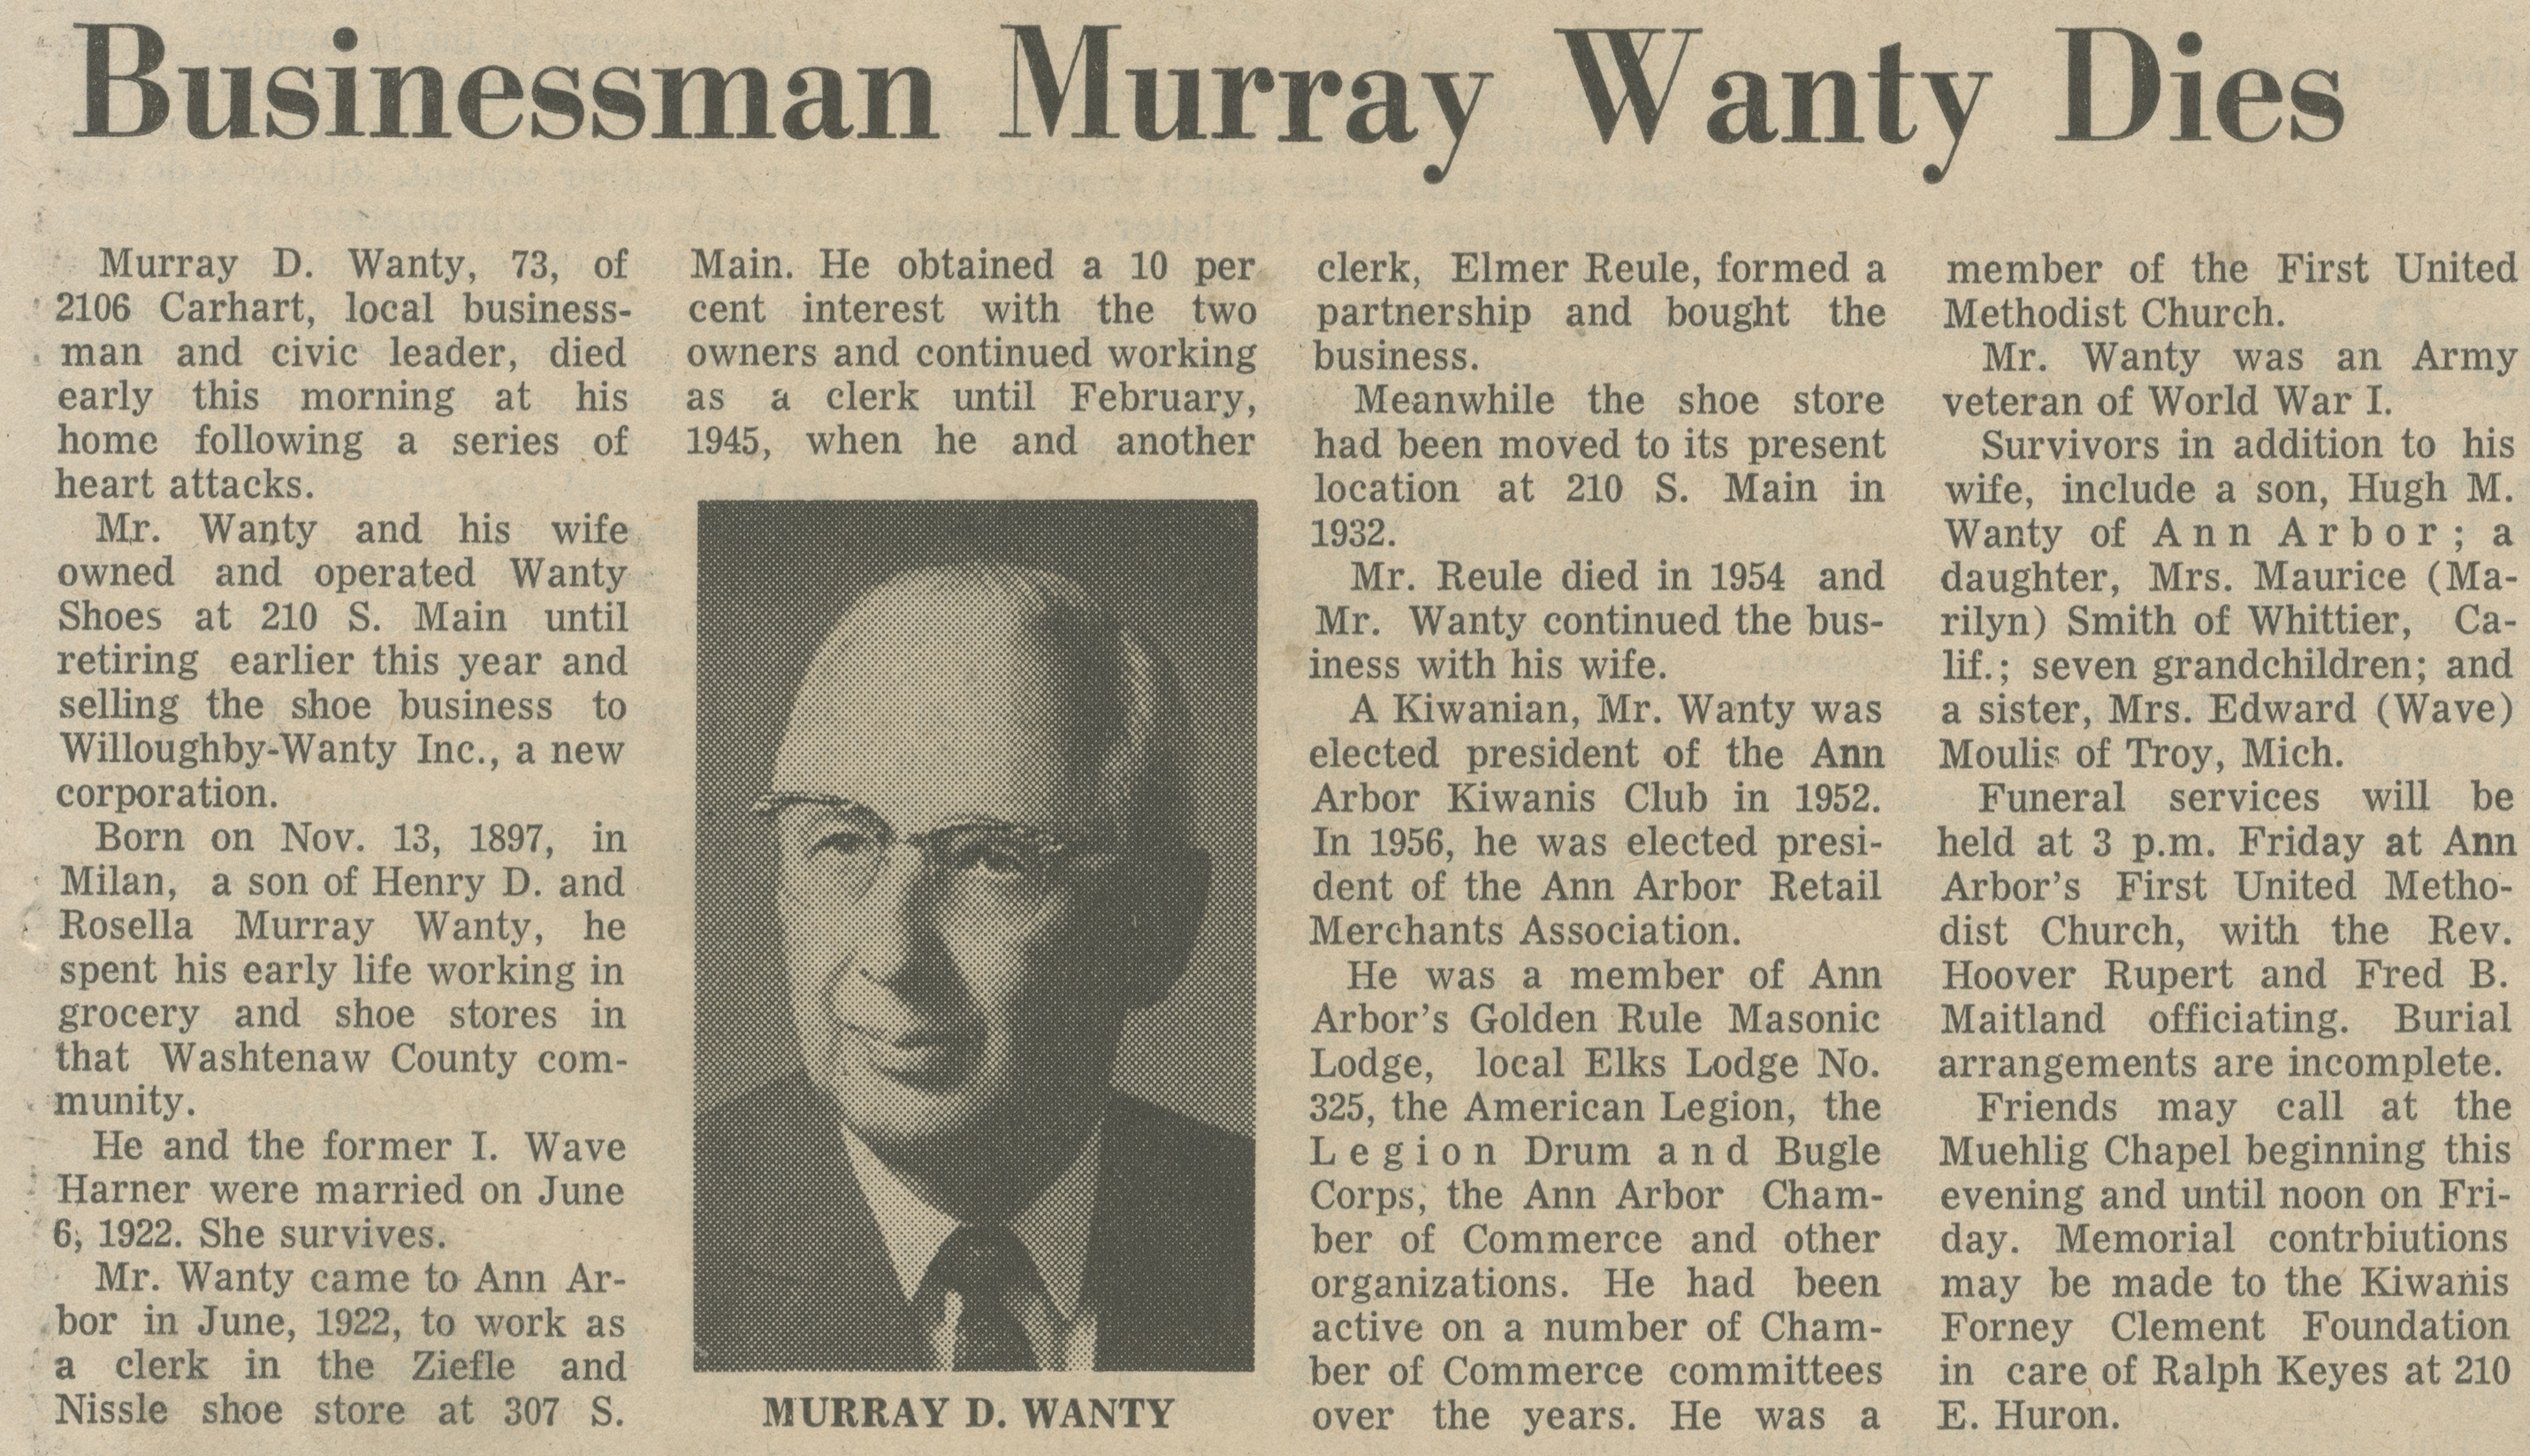 Businessman Murray Wanty Dies image